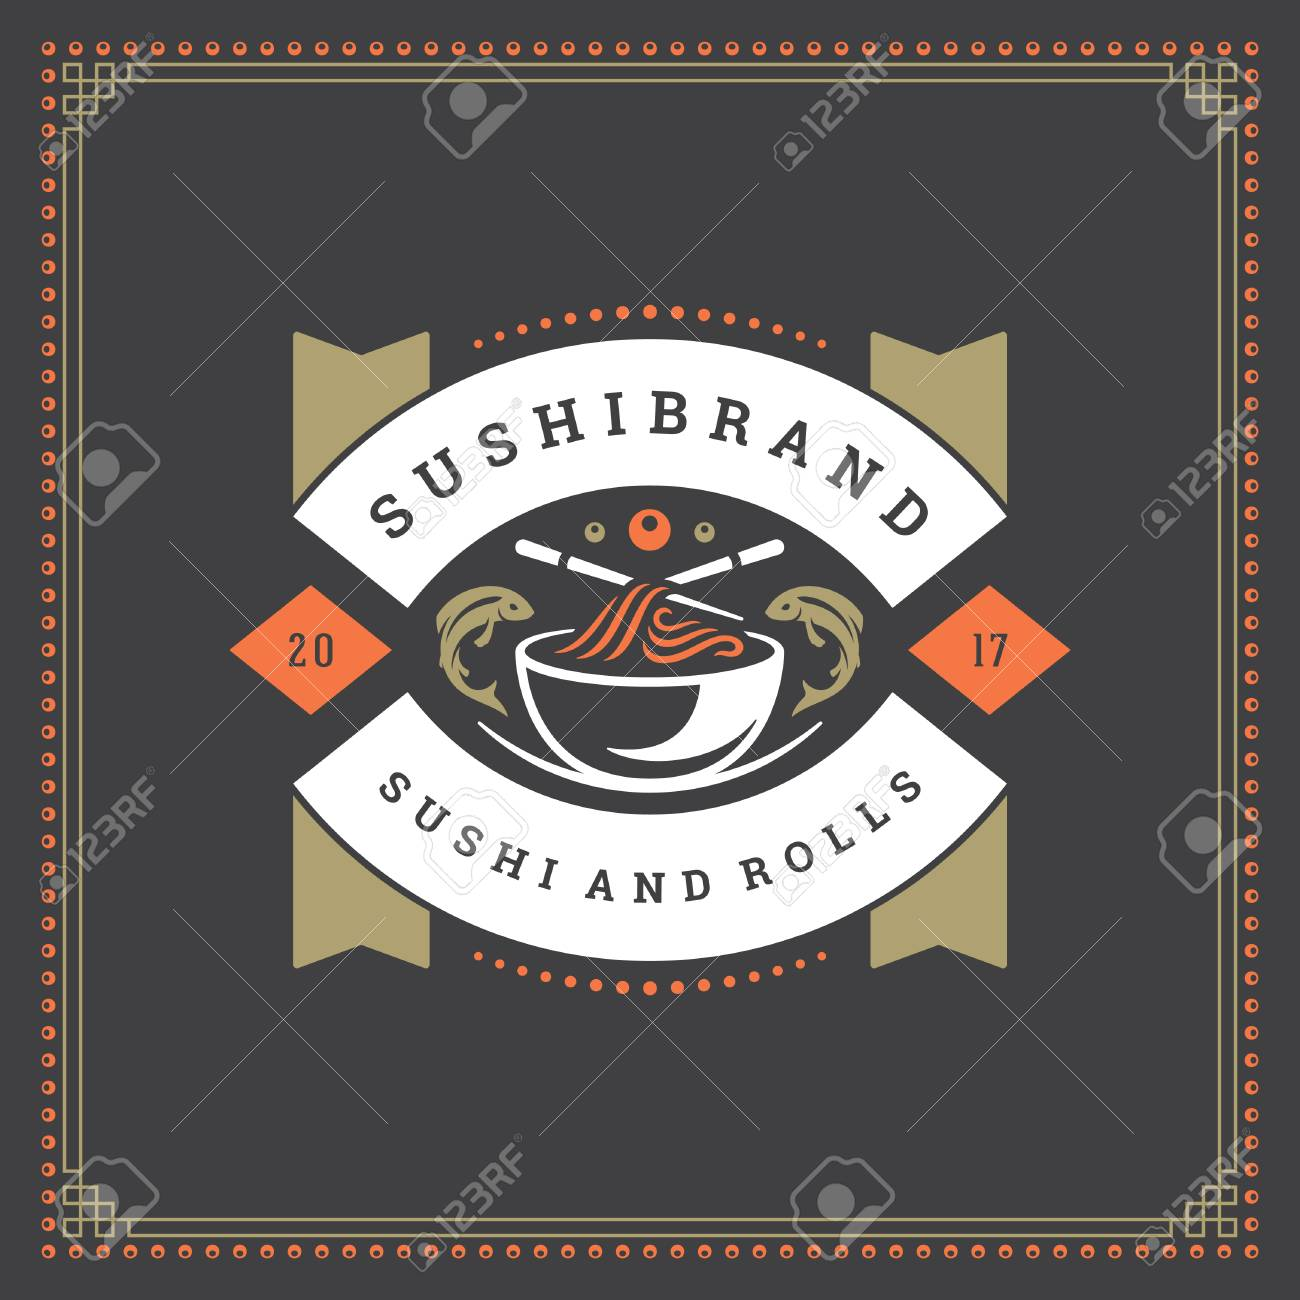 Sushi Restaurant Logo Vector Illustration Japanese Food Ramen Royalty Free Cliparts Vectors And Stock Illustration Image 95720477